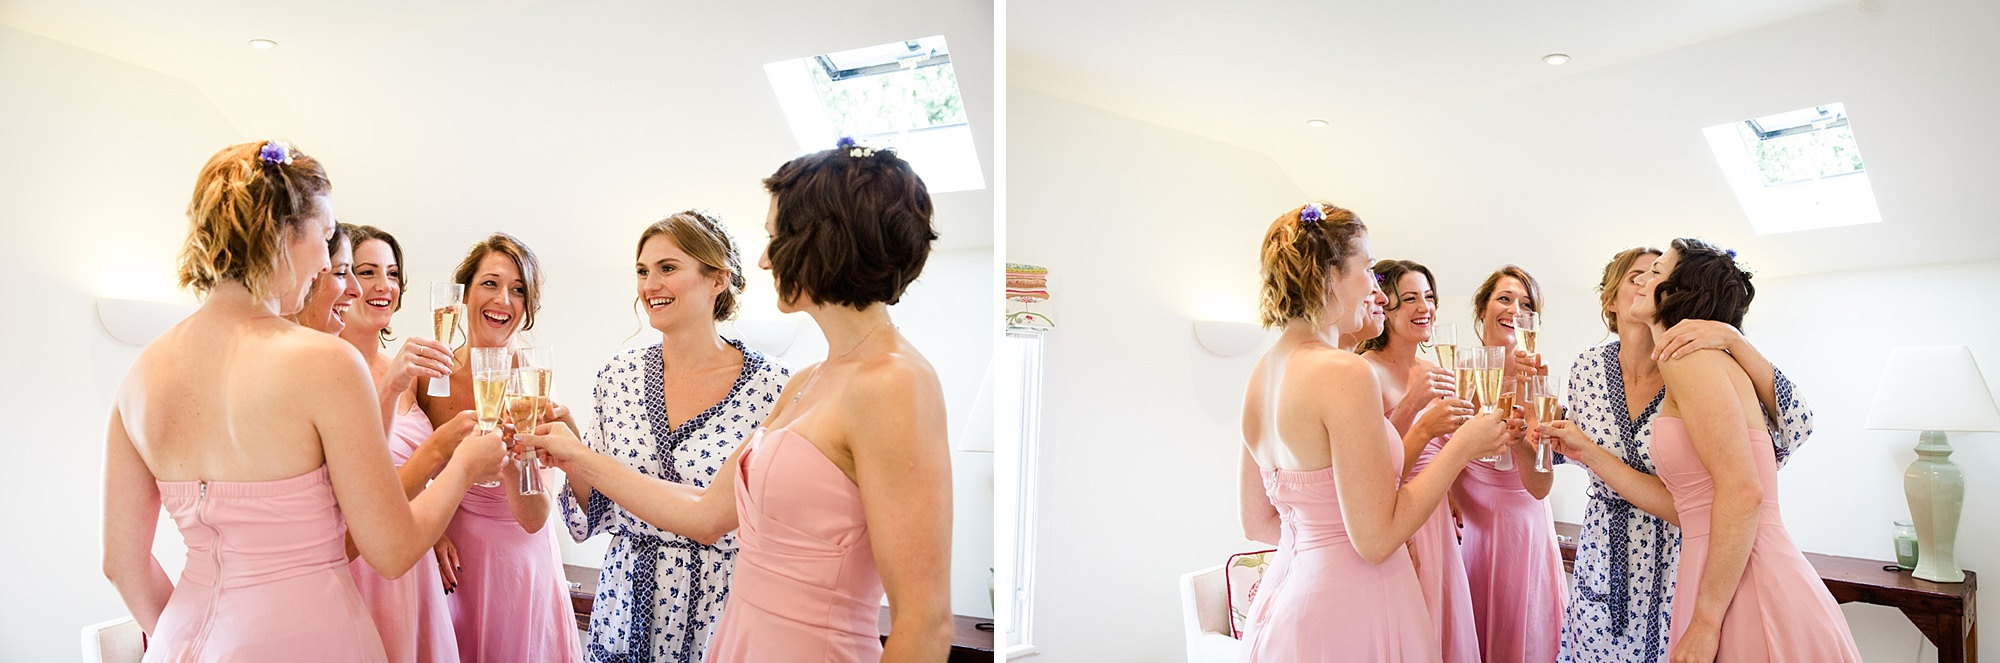 Marks Hall Estate wedding photography bridesmaids toasting with champagne